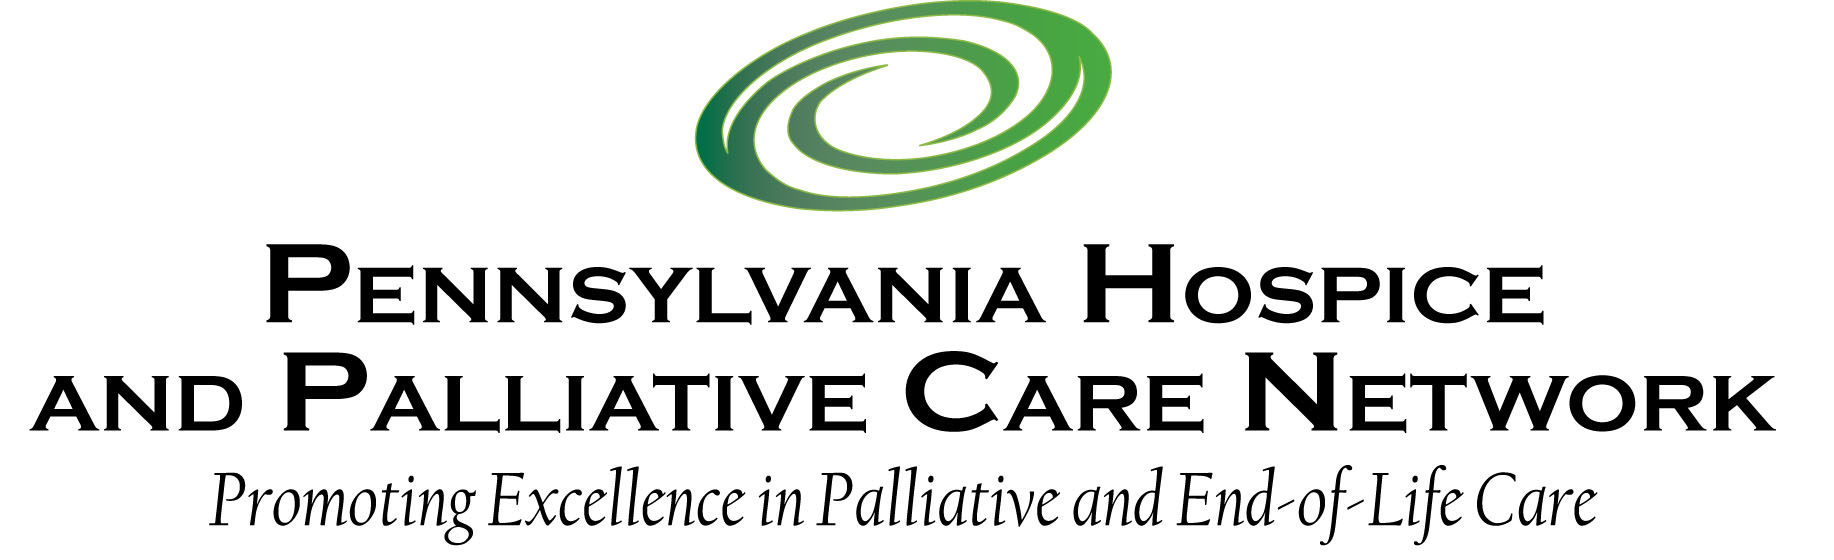 2019 Phpcn Annual Conference Information